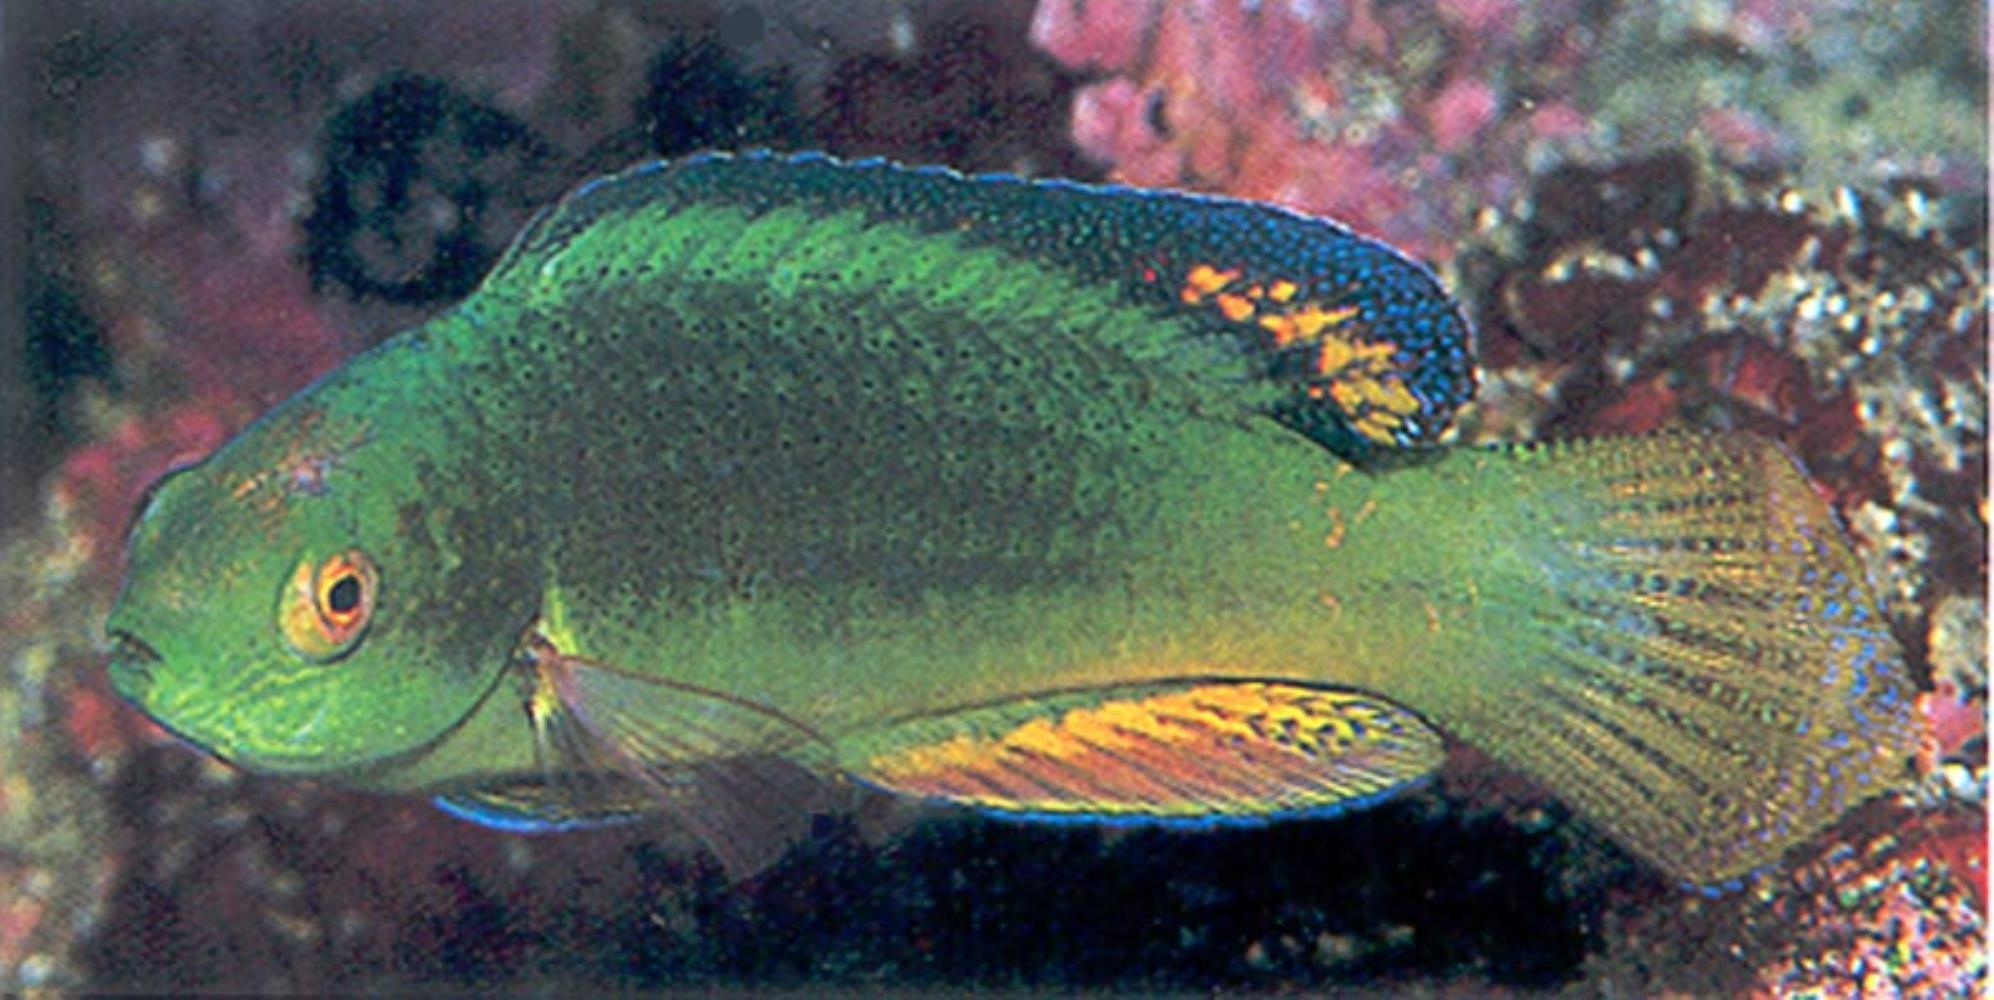 Blackfin Fairy Wrasse